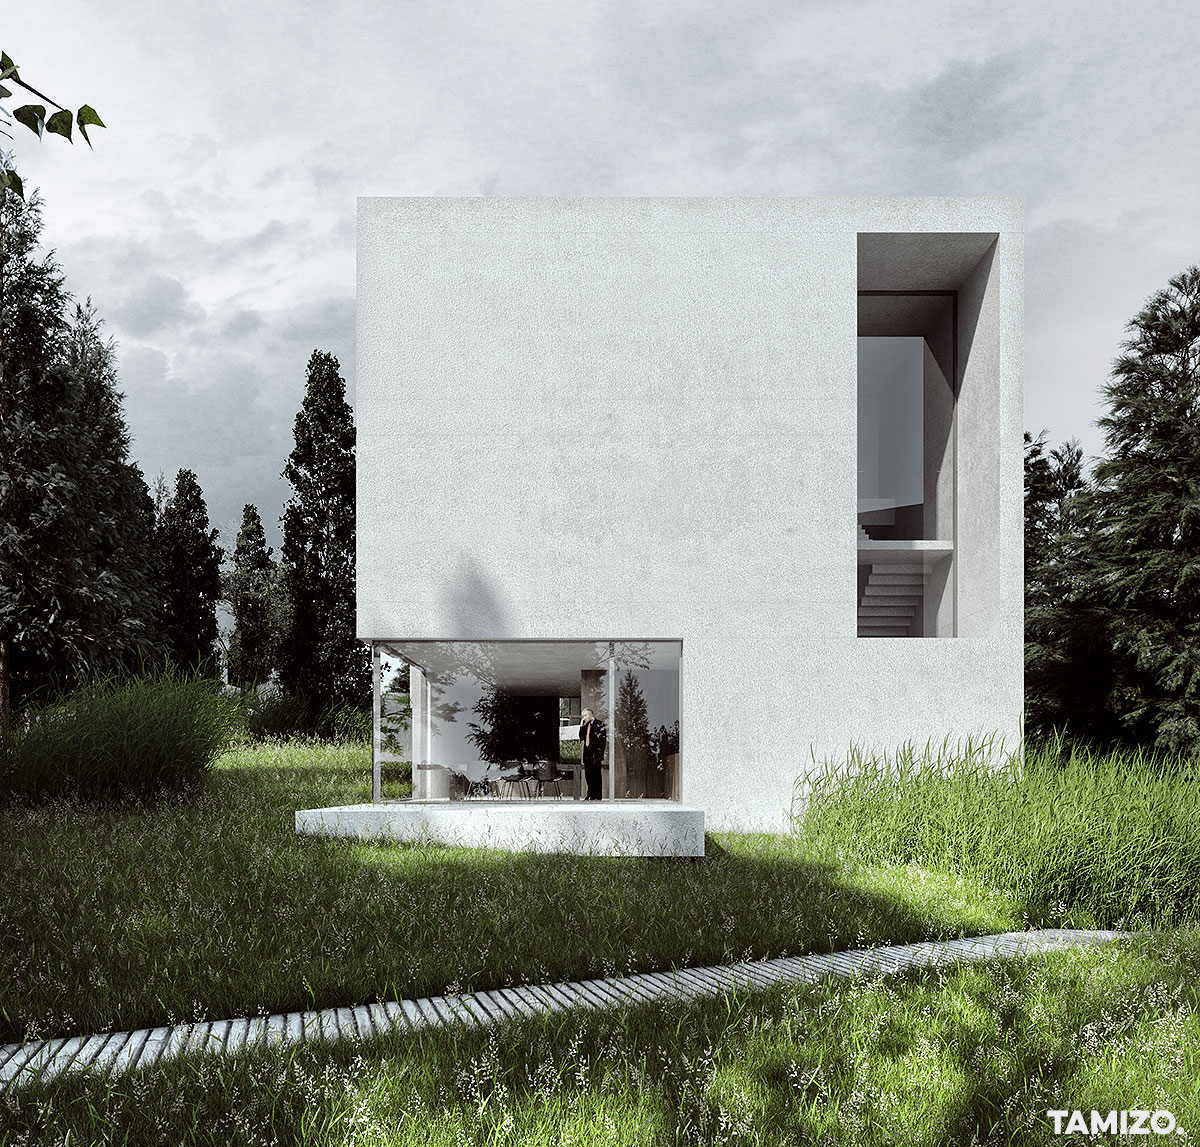 A061_tamizo_architects_competition_tbilisi_georgia_multifamily_houseing_realestate_07